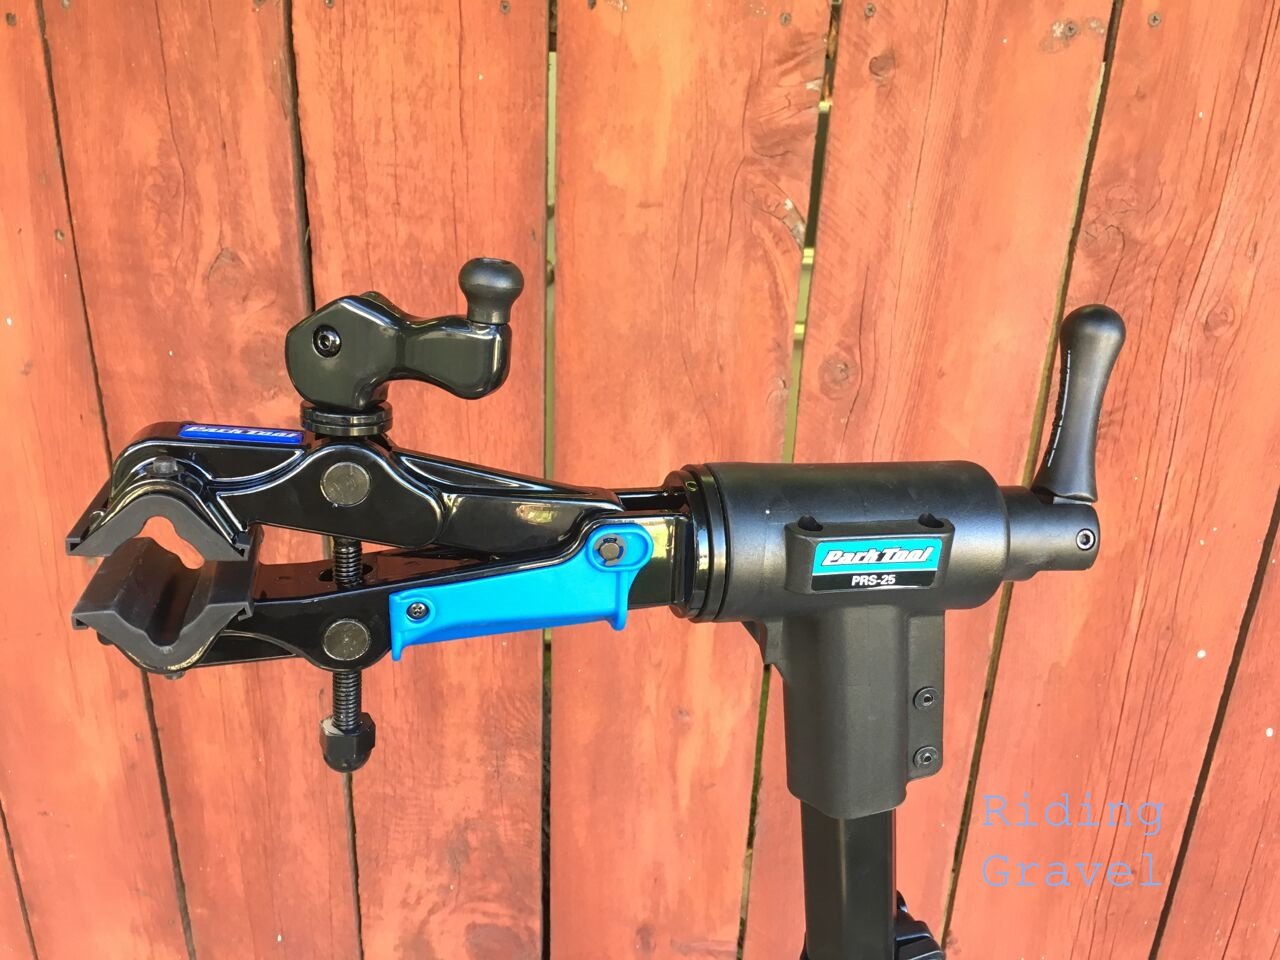 Park Tool Prs 25 Team Issue Repair Stand Quick Review